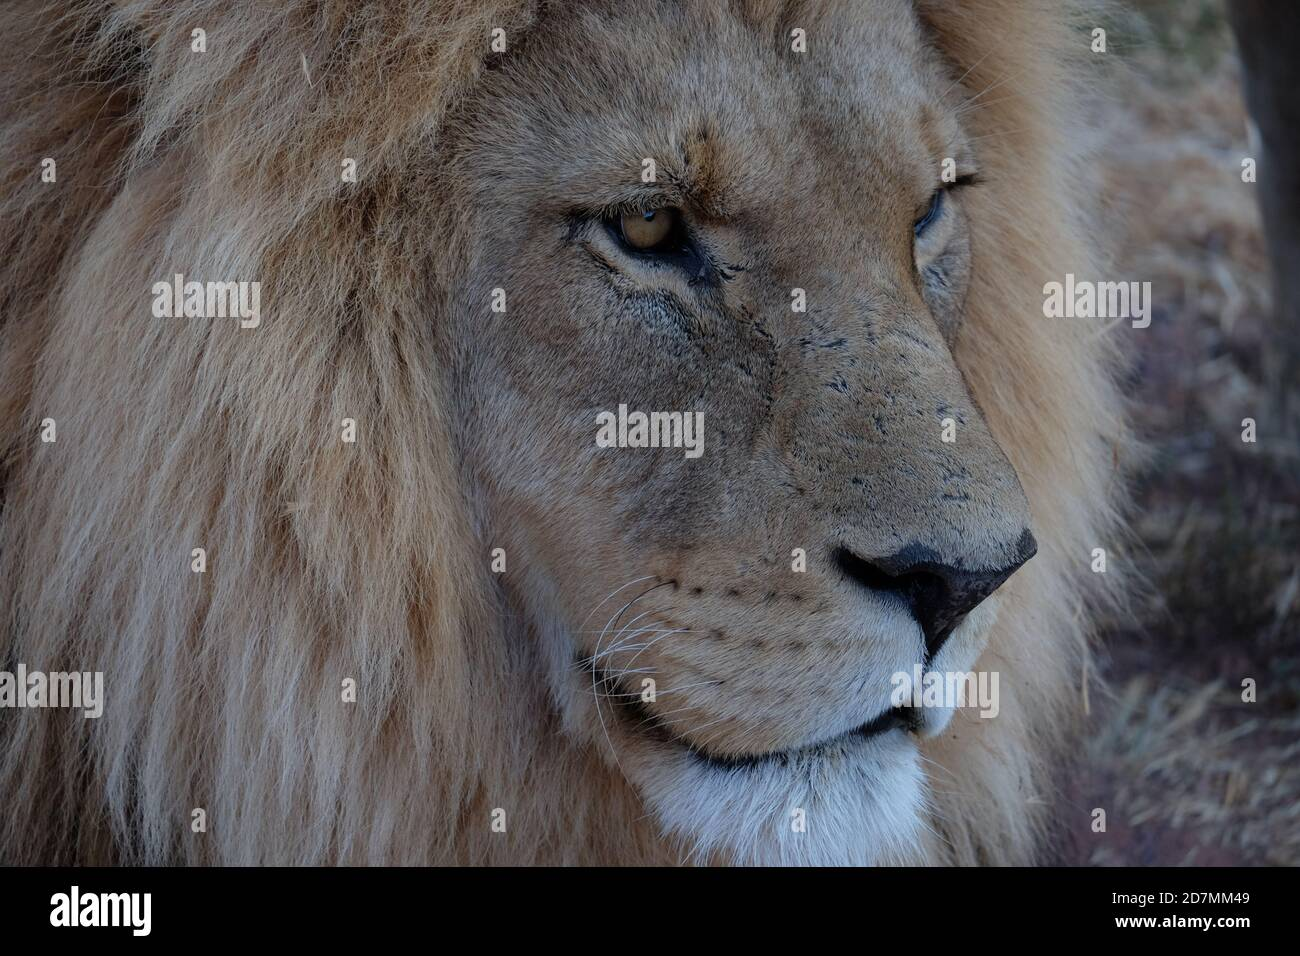 Lions in South Africa Stock Photo